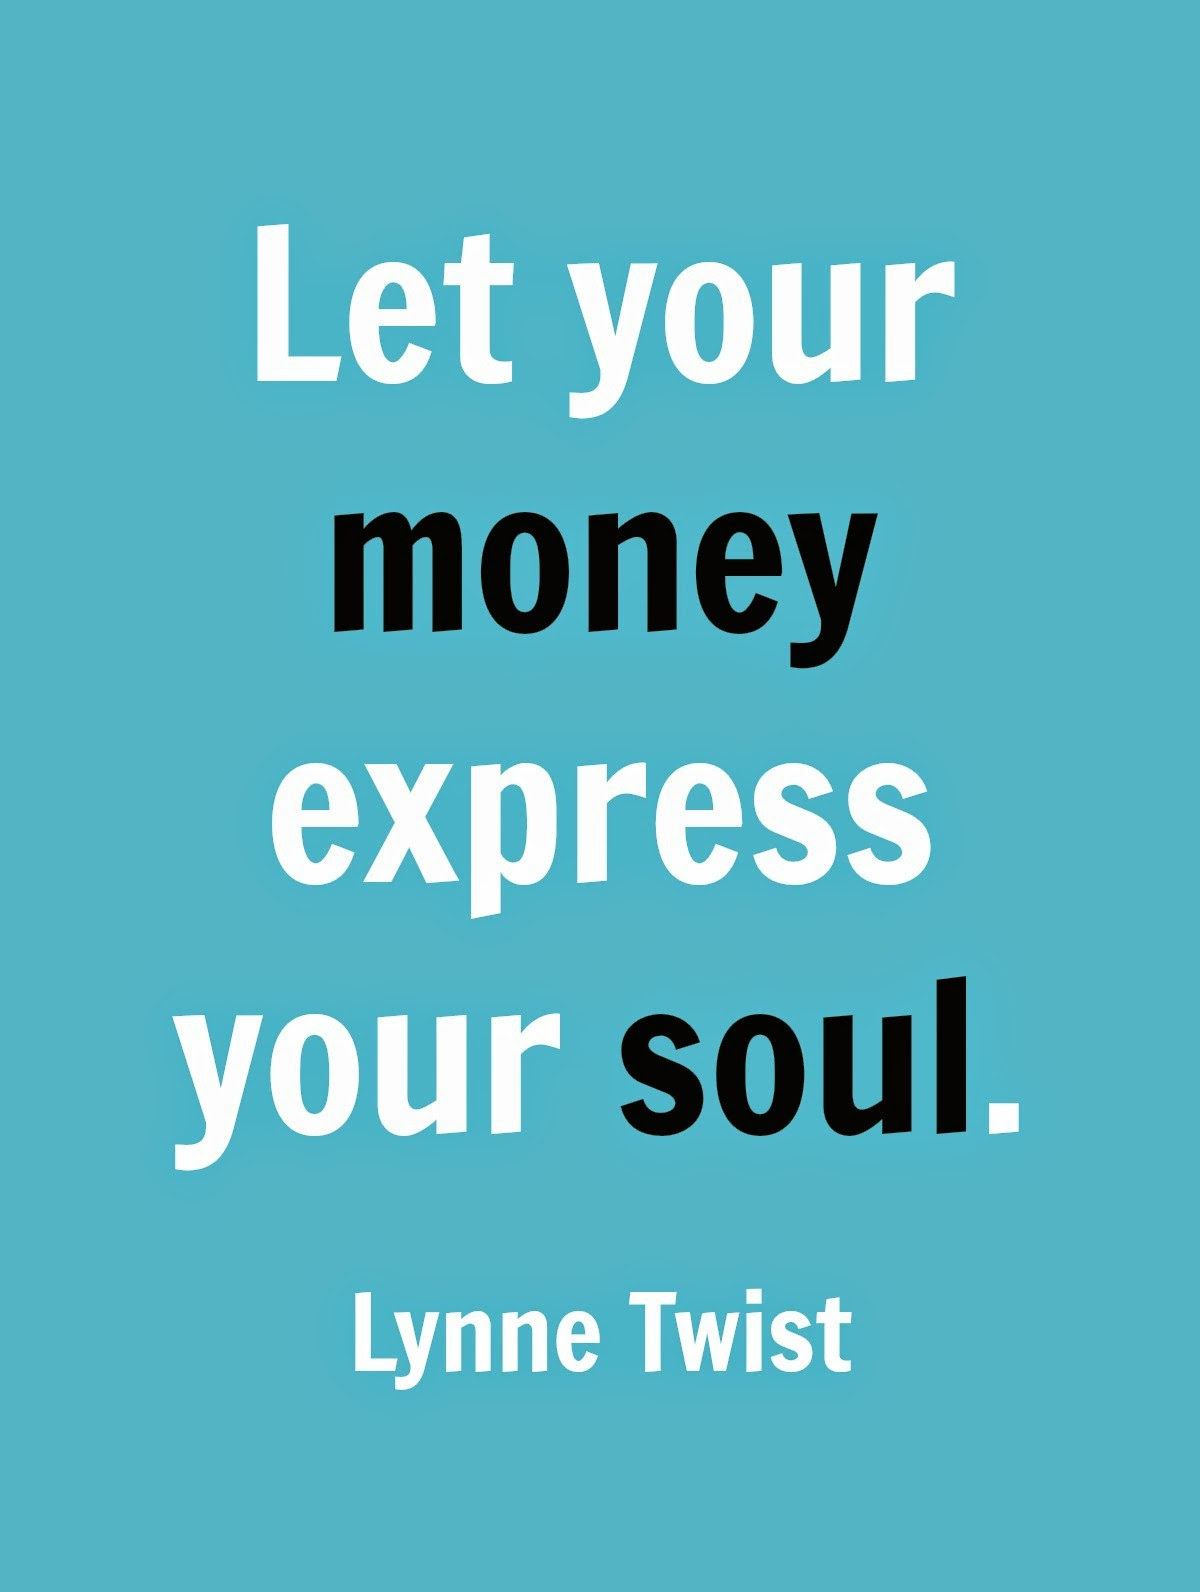 Soul Money Lynne Twist quote